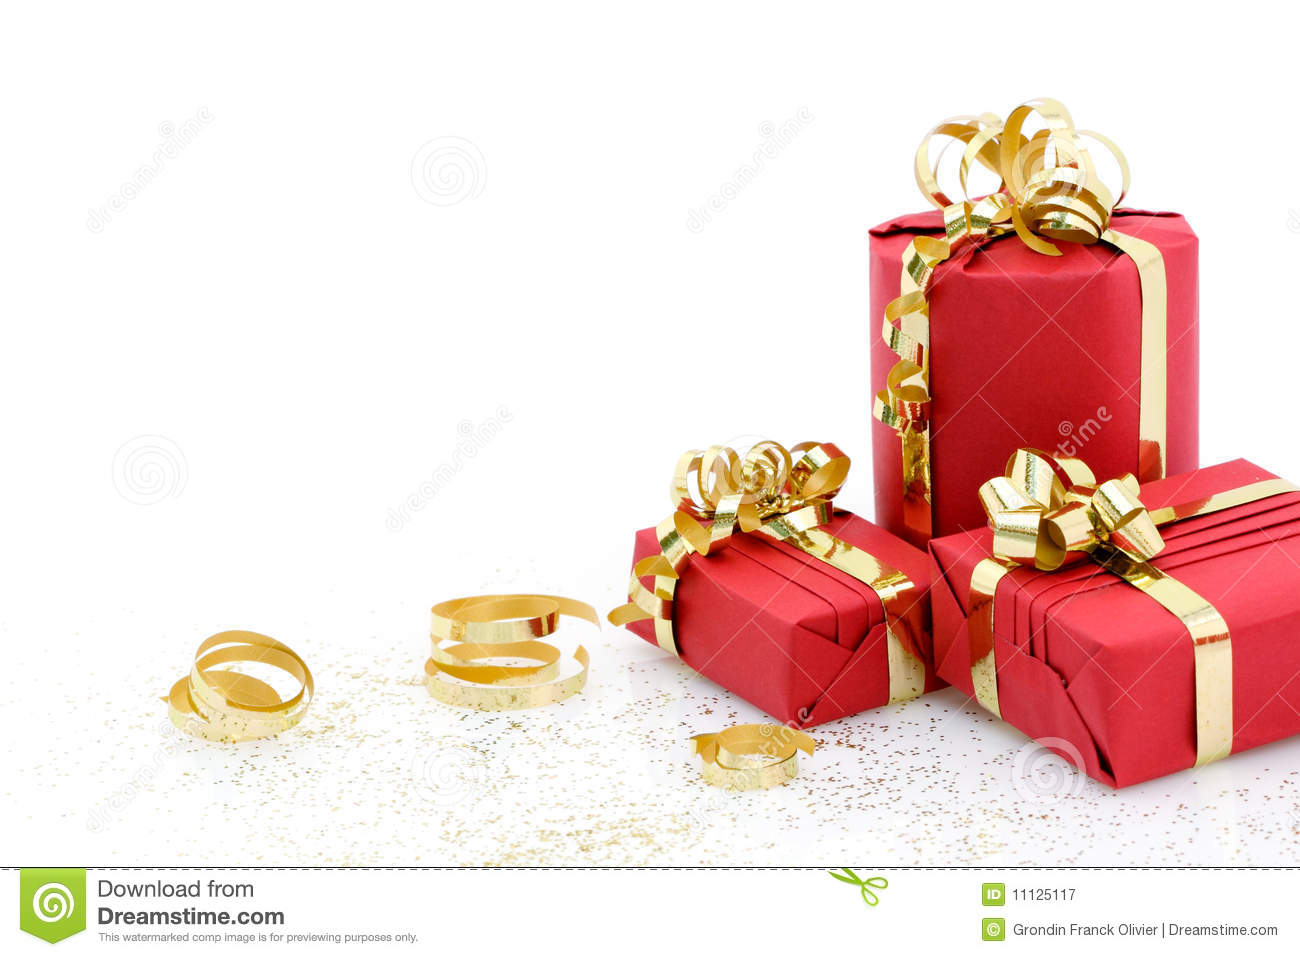 Christmas presents stock image. Image of year, packet - 11125117